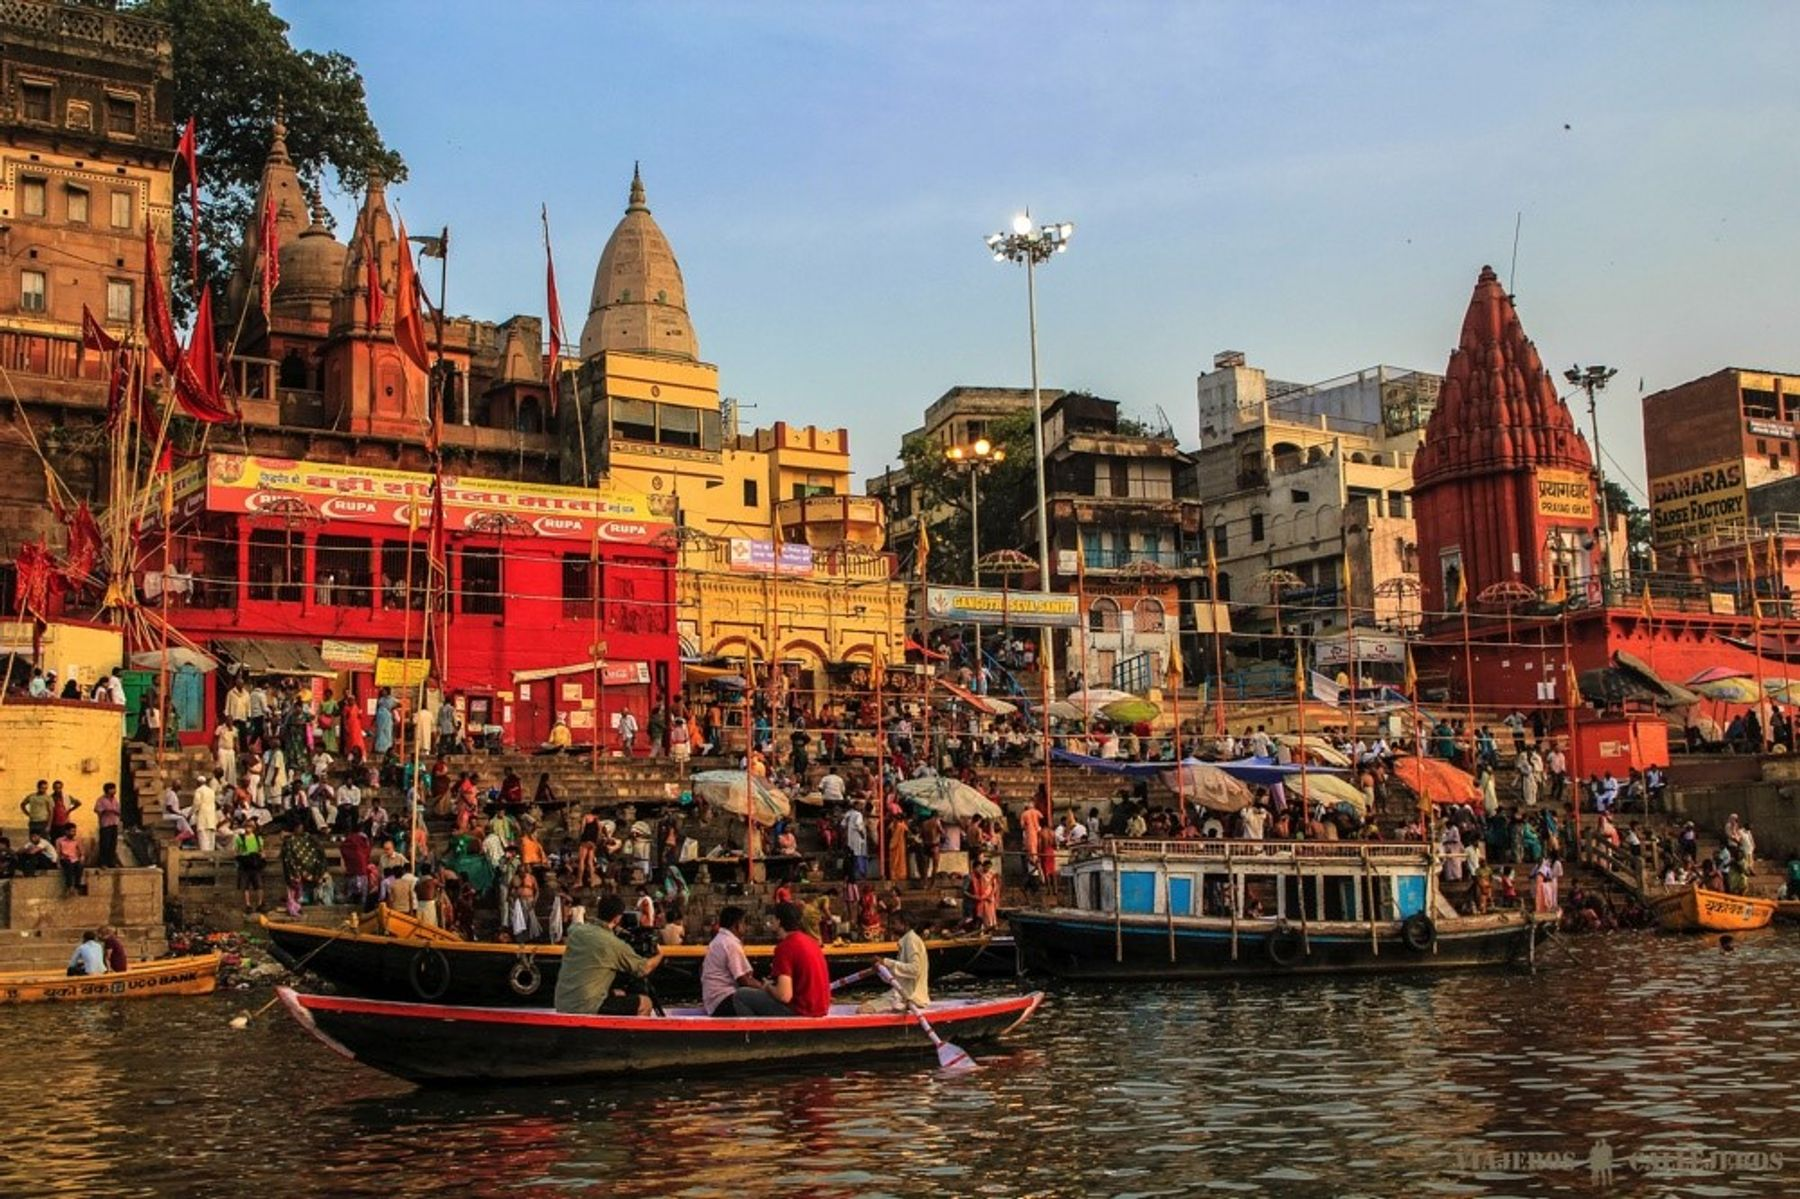 The colorful buildings and boats in India